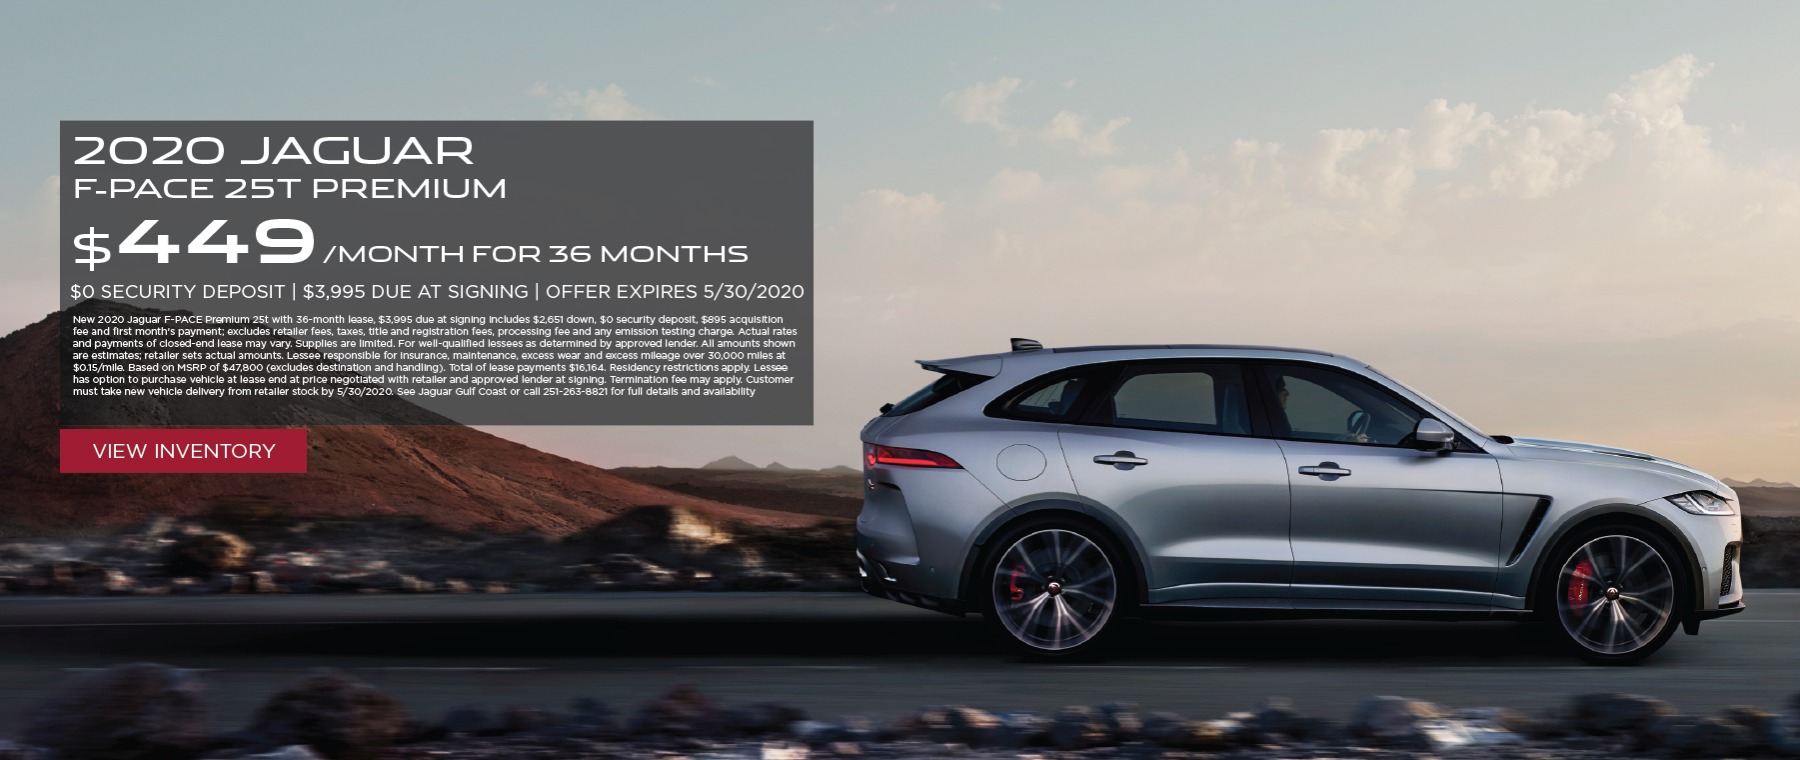 Grey 2020 F-PACE Premium 25t on road near mountains. Lease for $449/mo for 36 months $3,995 Cash due at signing. New 2020 Jaguar F-PACE Premium 25t with 36-month lease, $3,995 due at signing includes $2,651 down, $0 security deposit, $895 acquisition fee and first month's payment; excludes retailer fees, taxes, title and registration fees, processing fee and any emission testing charge. Actual rates and payments of closed-end lease may vary. Supplies are limited. For well-qualified lessees as determined by approved lender. All amounts shown are estimates; retailer sets actual amounts. Lessee responsible for insurance, maintenance, excess wear and excess mileage over 30,000 miles at $0.15/mile. Based on MSRP of $47,800 (excludes destination and handling). Total of lease payments $16,164. Residency restrictions apply. Lessee has option to purchase vehicle at lease end at price negotiated with retailer and approved lender at signing. Termination fee may apply. Customer must take new vehicle delivery from retailer stock by 5/30/2020. See Jaguar Gulf Coast or call 251-263-8821 for full details and availability. Click to view inventory.